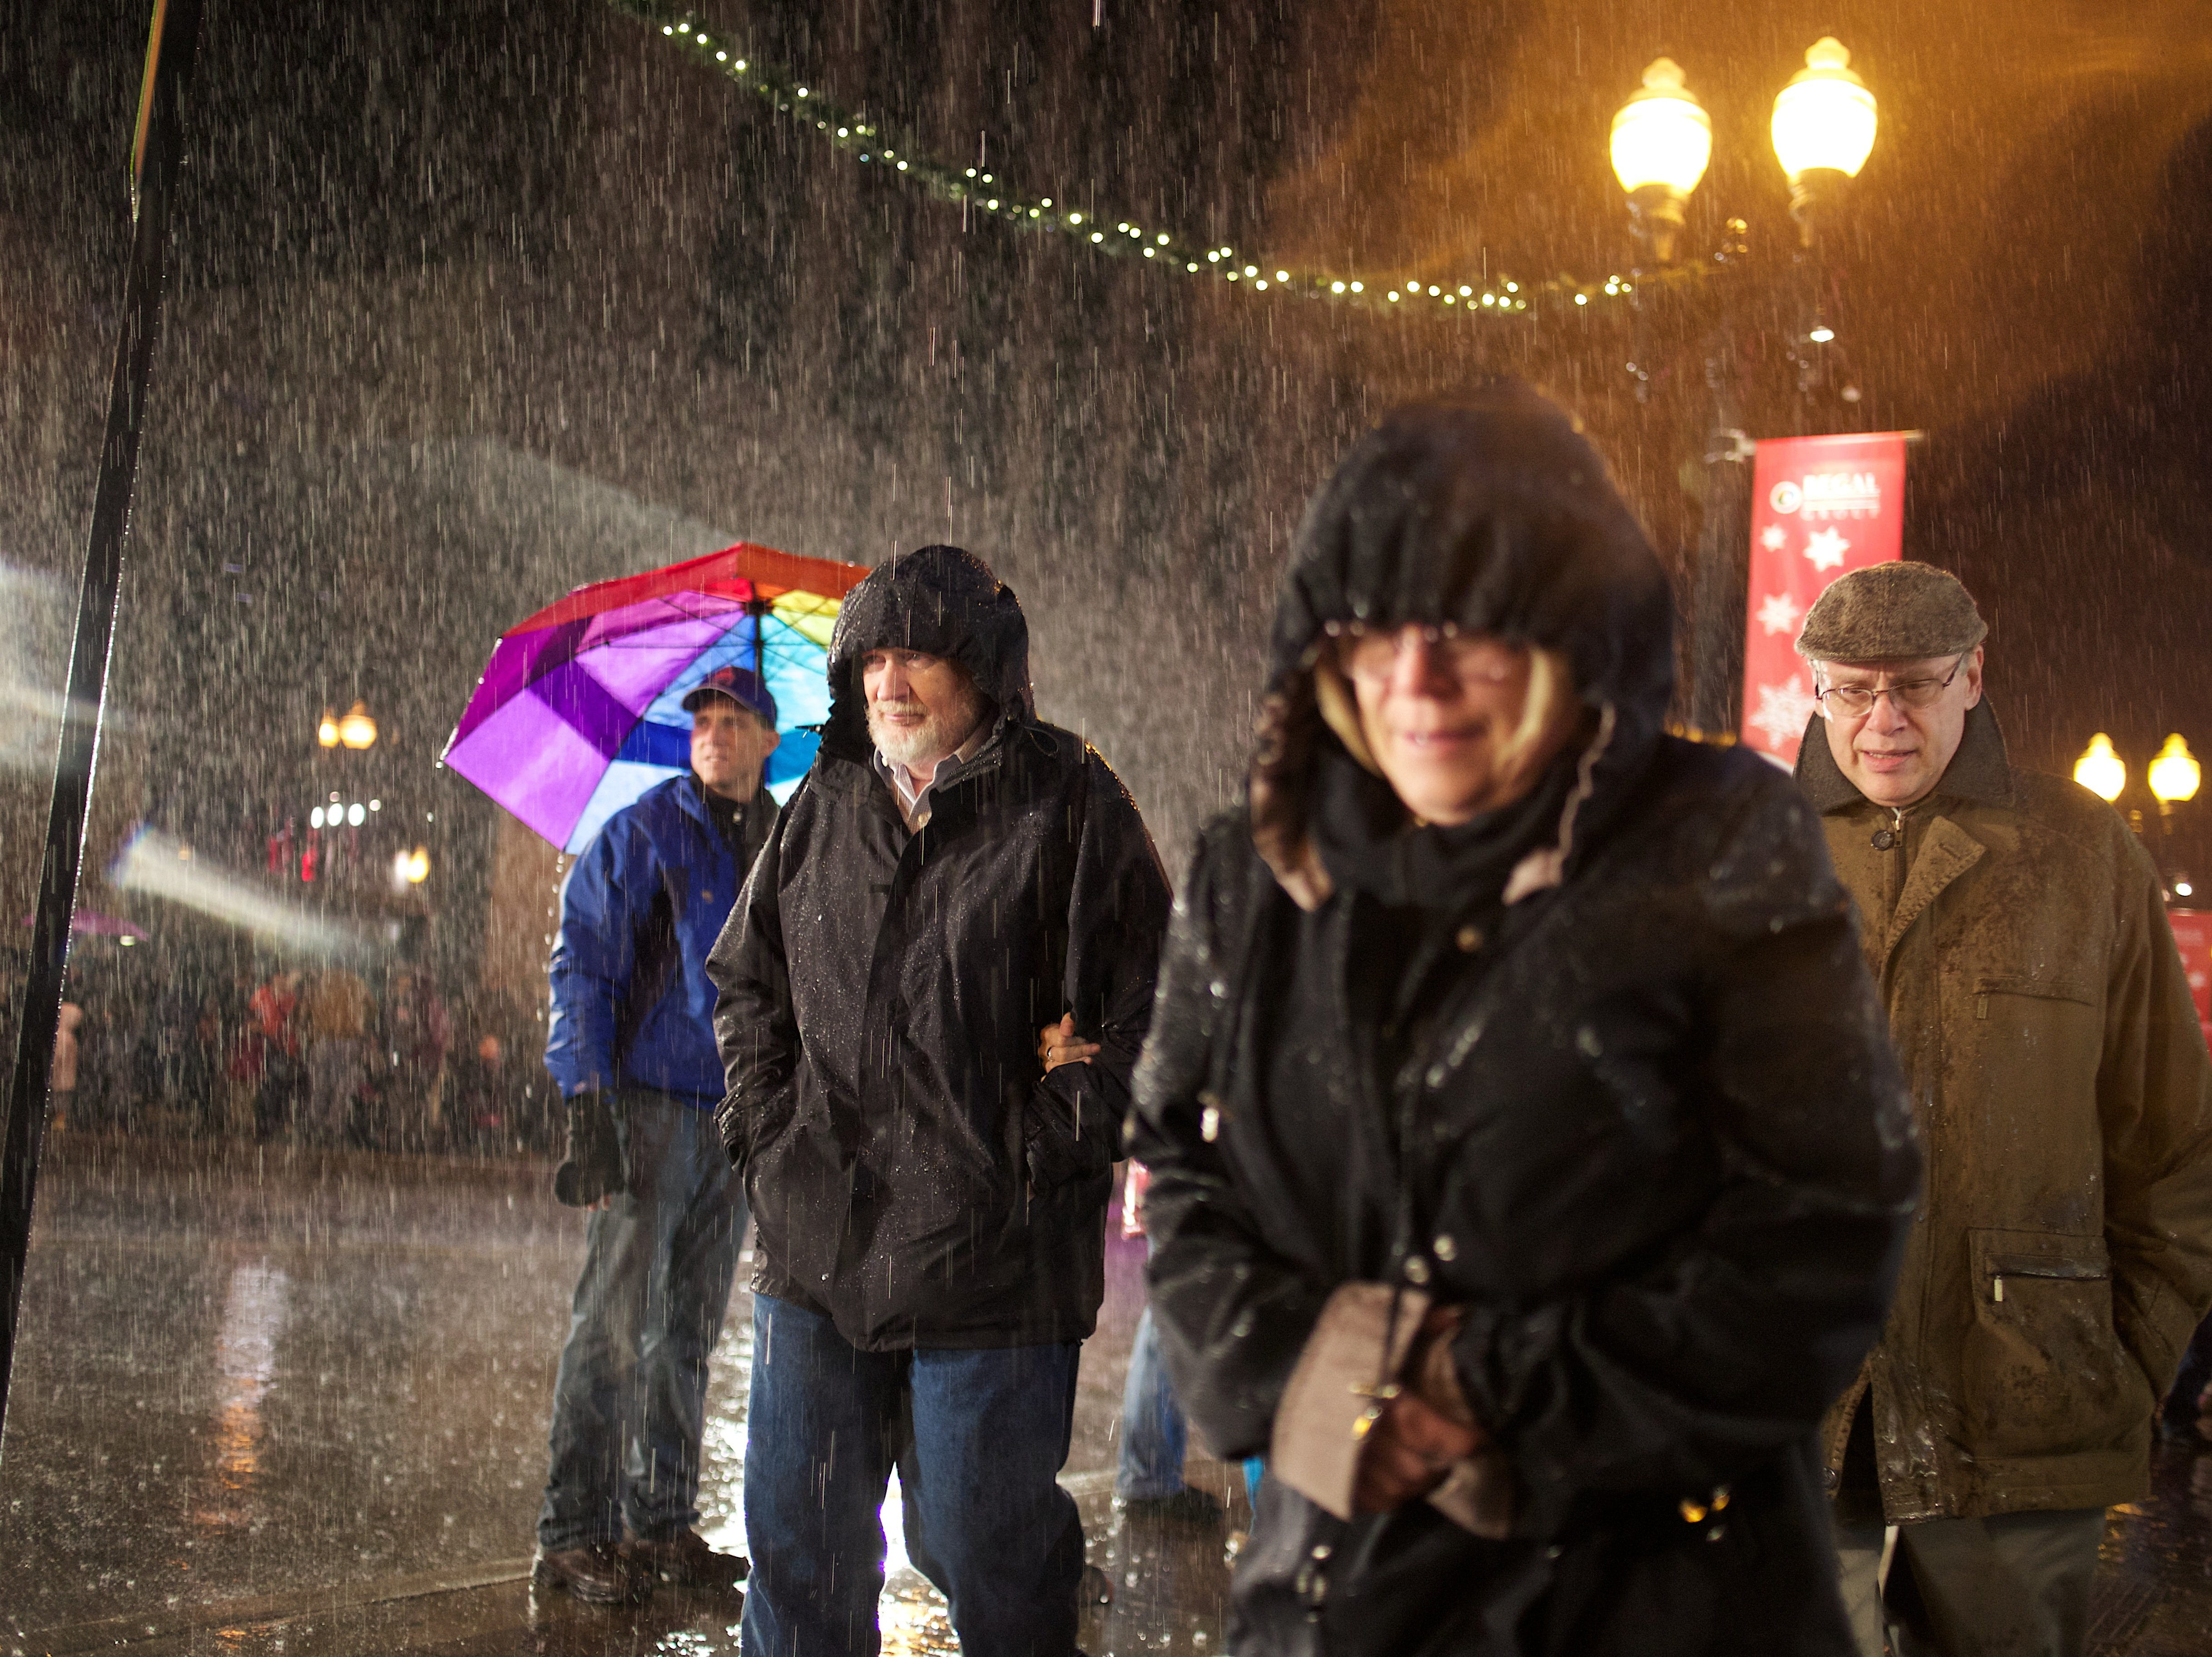 Parade spectators are seen leaving the WIVK Christmas Parade in the rain on Gay Street in Knoxville, Tenn. on Friday, December 6, 2013.